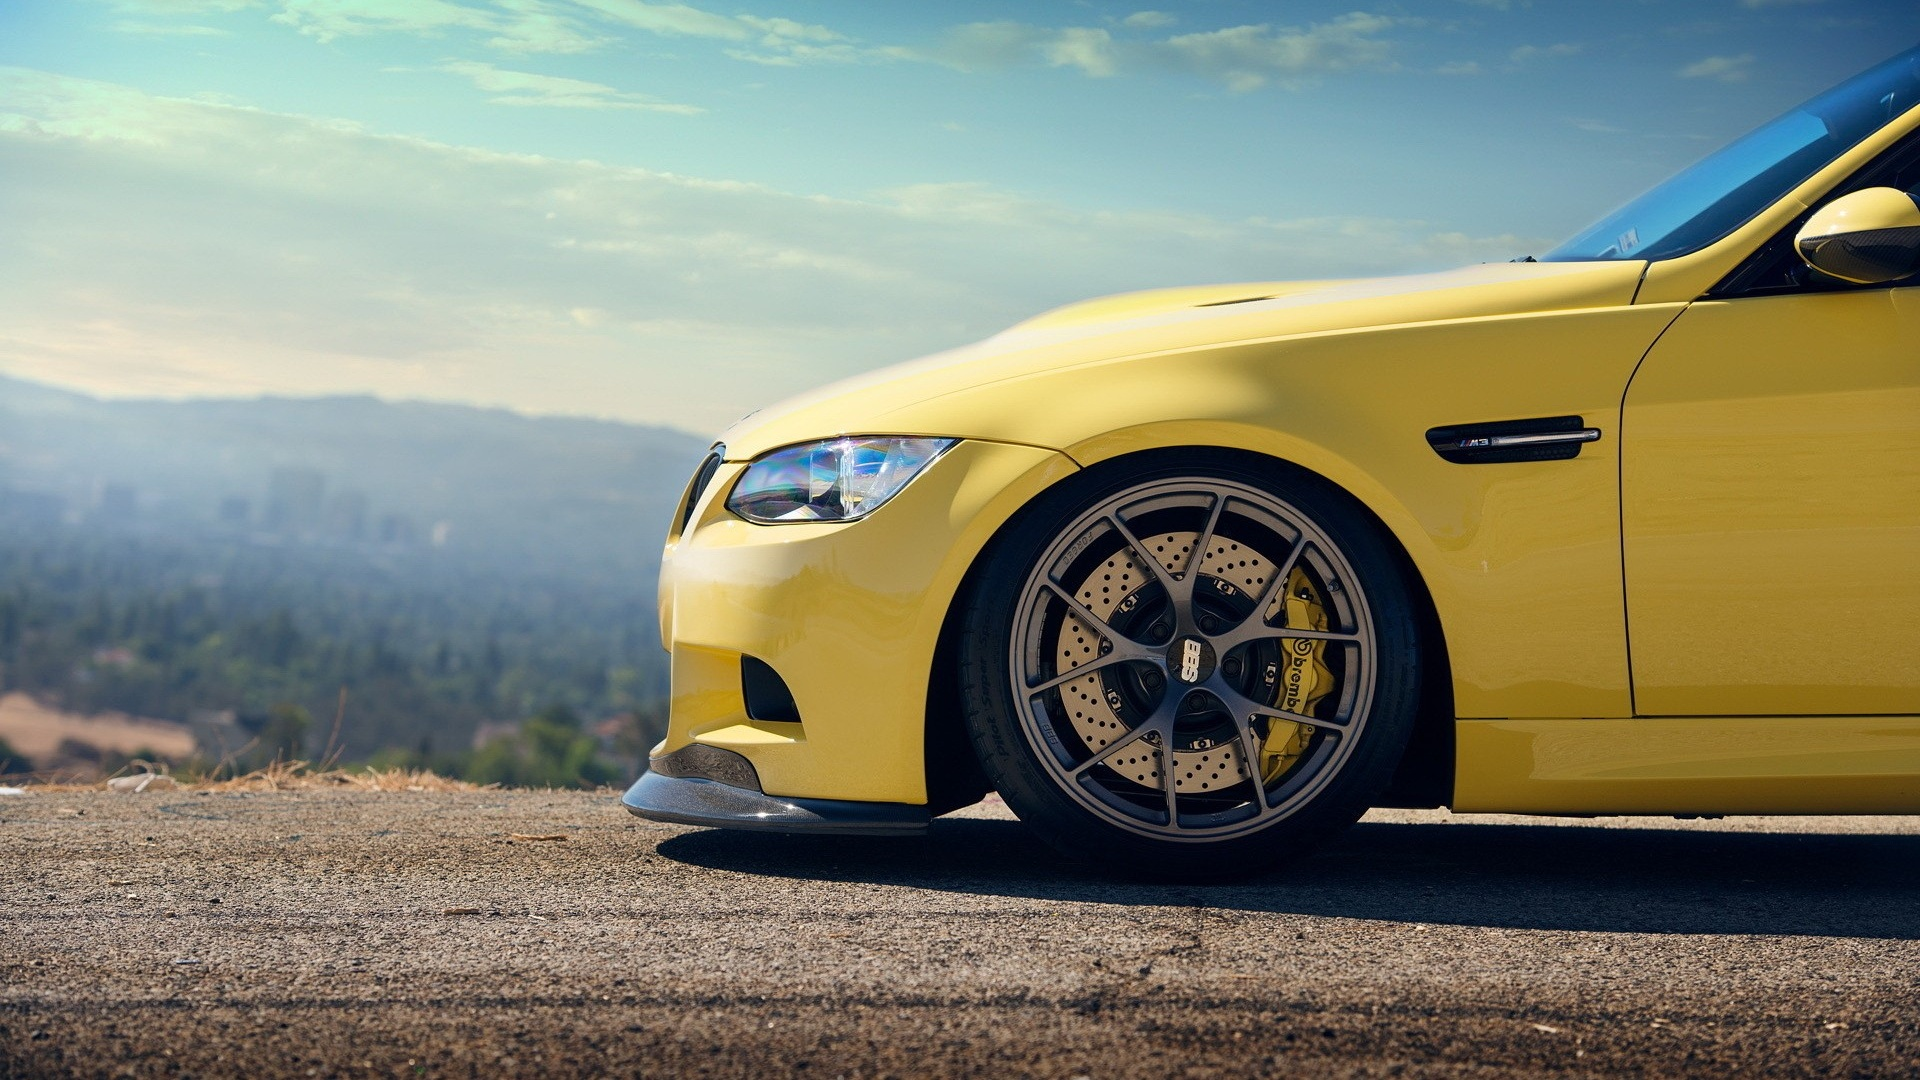 1920x1080 Yellow Bmw M3 Bonnet Desktop Pc And Mac Wallpaper